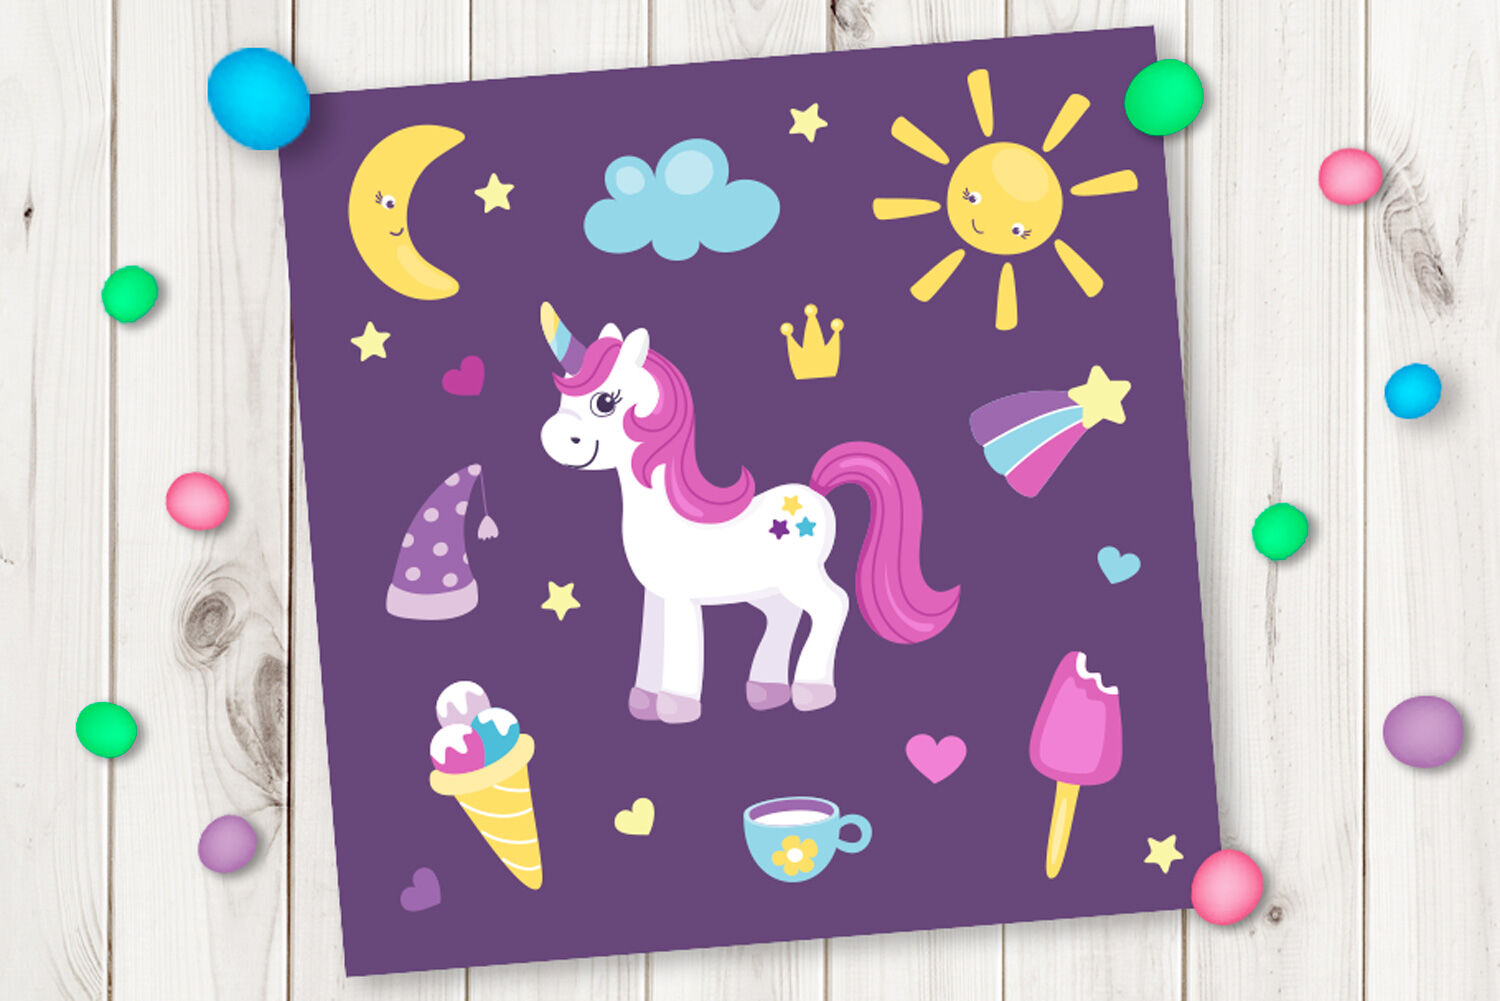 Cartoon Cute Unicorn By Nesterova S Shop Thehungryjpeg Com